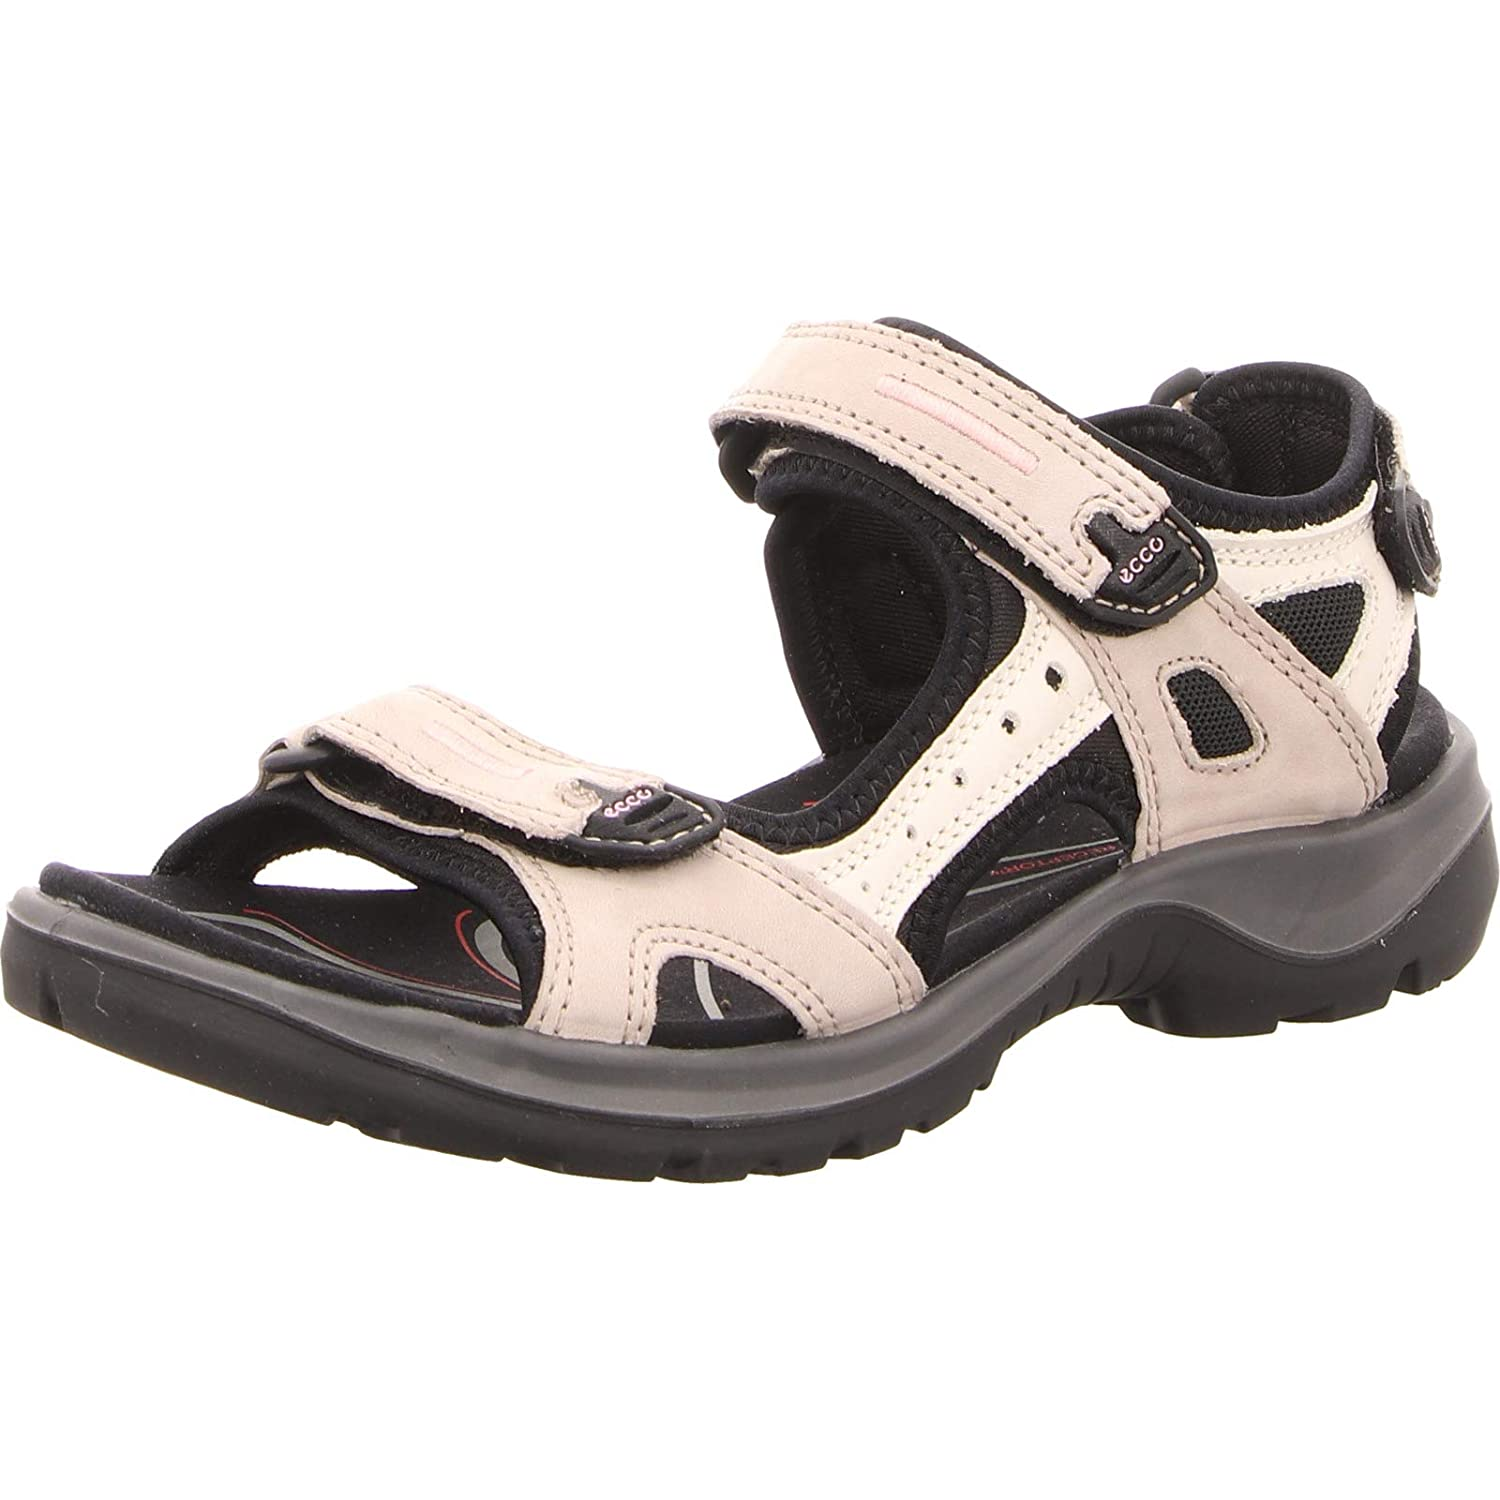 7fe2a50f50d0 ECCO Women s Offroad Athletic Sandals  Amazon.co.uk  Shoes   Bags